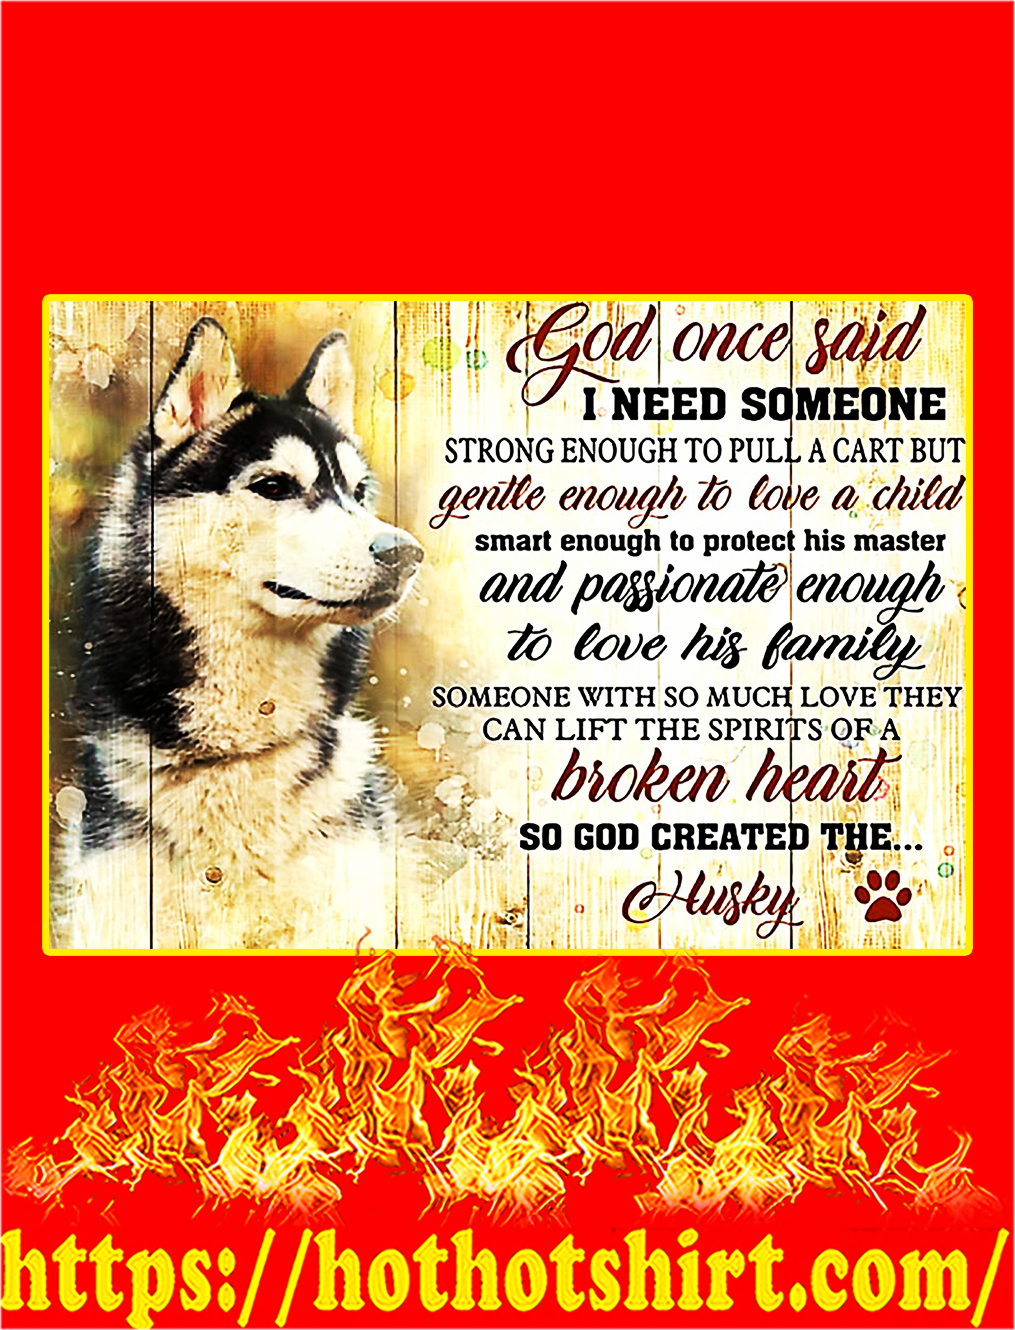 God once said husky poster - A4